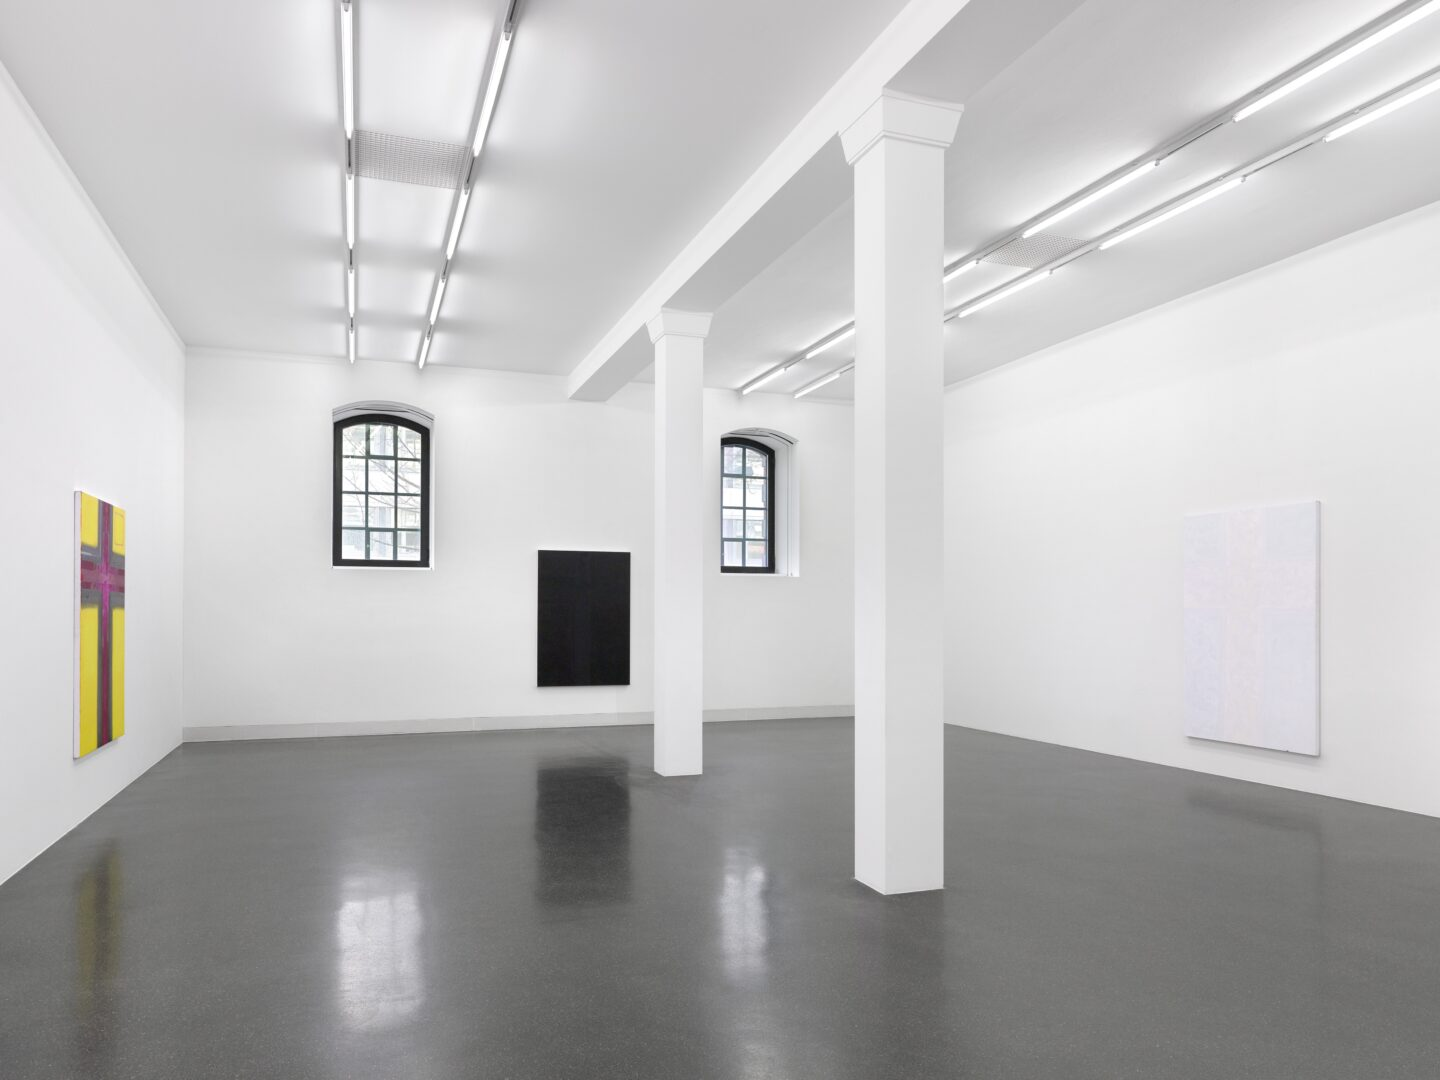 Exhibition View Emil Michael Klein Soloshow «Mono Cross» at Galerie Francesca Pia, Zurich, 2020 / Photo: Annik Wetter / Courtesy: the artist and Galerie Francesca Pia